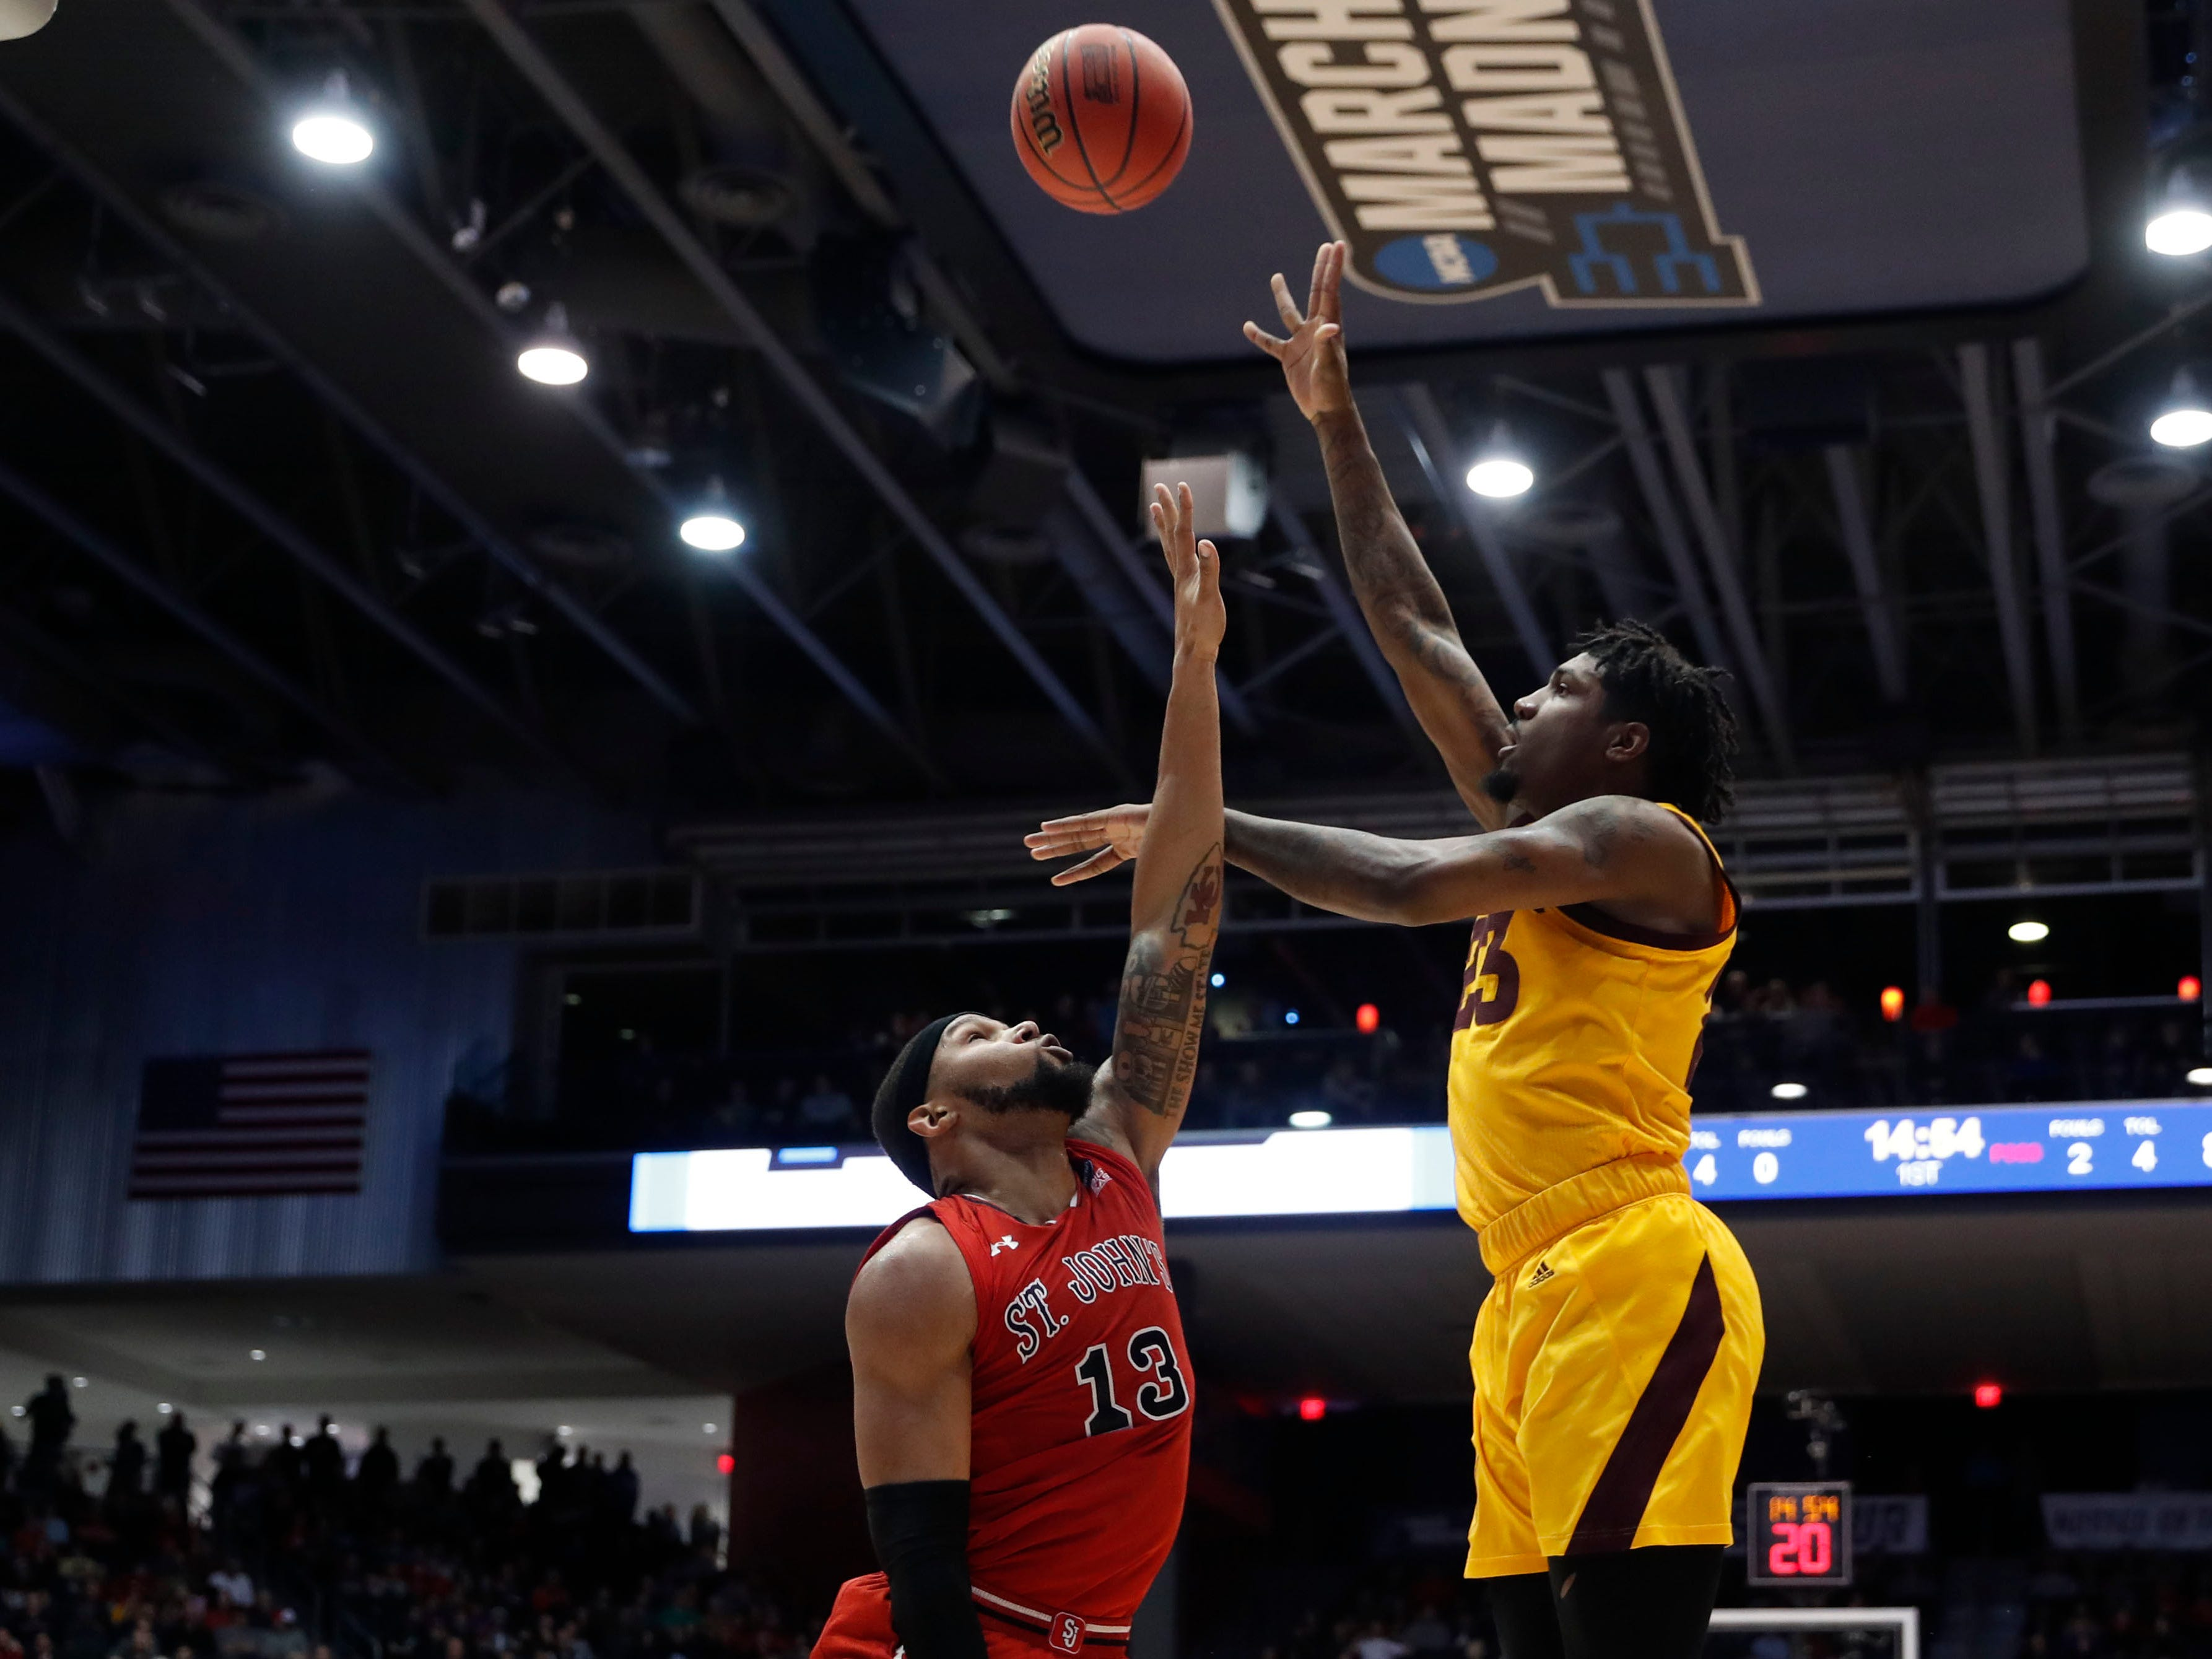 Mar 20, 2019; Dayton, OH, USA; Arizona State Sun Devils forward Romello White (23) shoots the ball over St. John's Red Storm forward Marvin Clark II (13) in the first half in the First Four of the 2019 NCAA Tournament at Dayton Arena. Mandatory Credit: Brian Spurlock -USA TODAY Sports